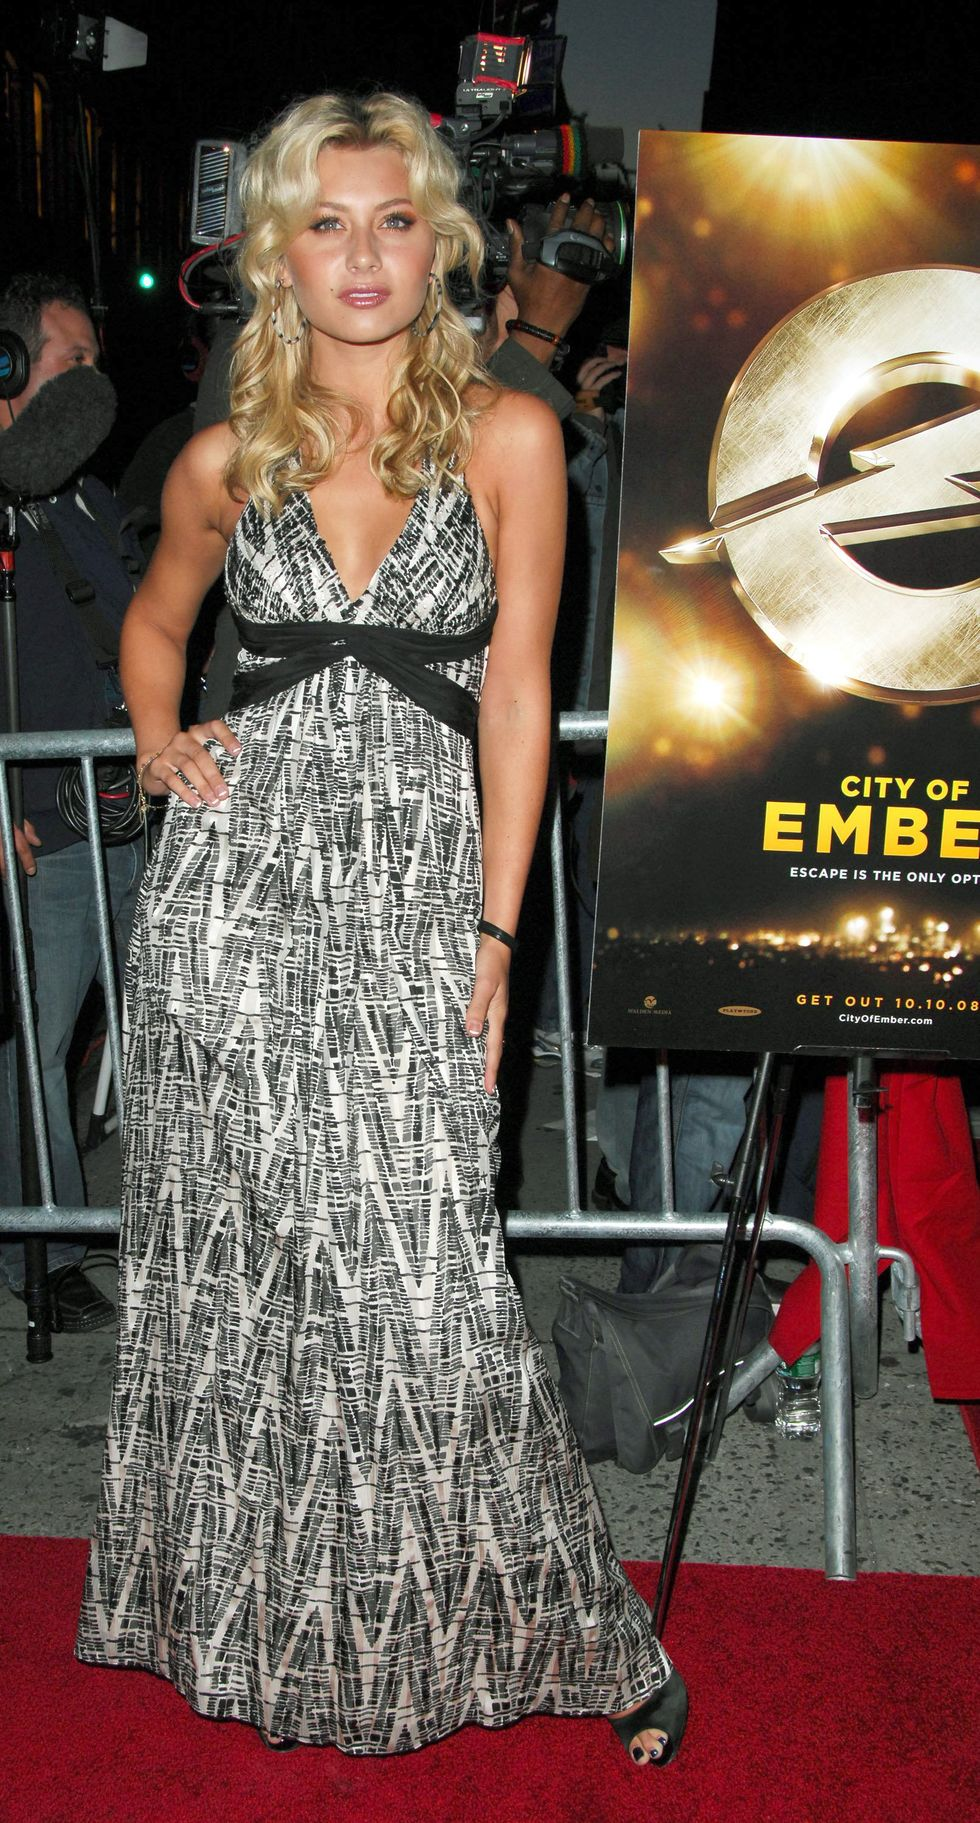 aly-and-aj-michalka-city-of-ember-special-screening-in-new-york-city-01